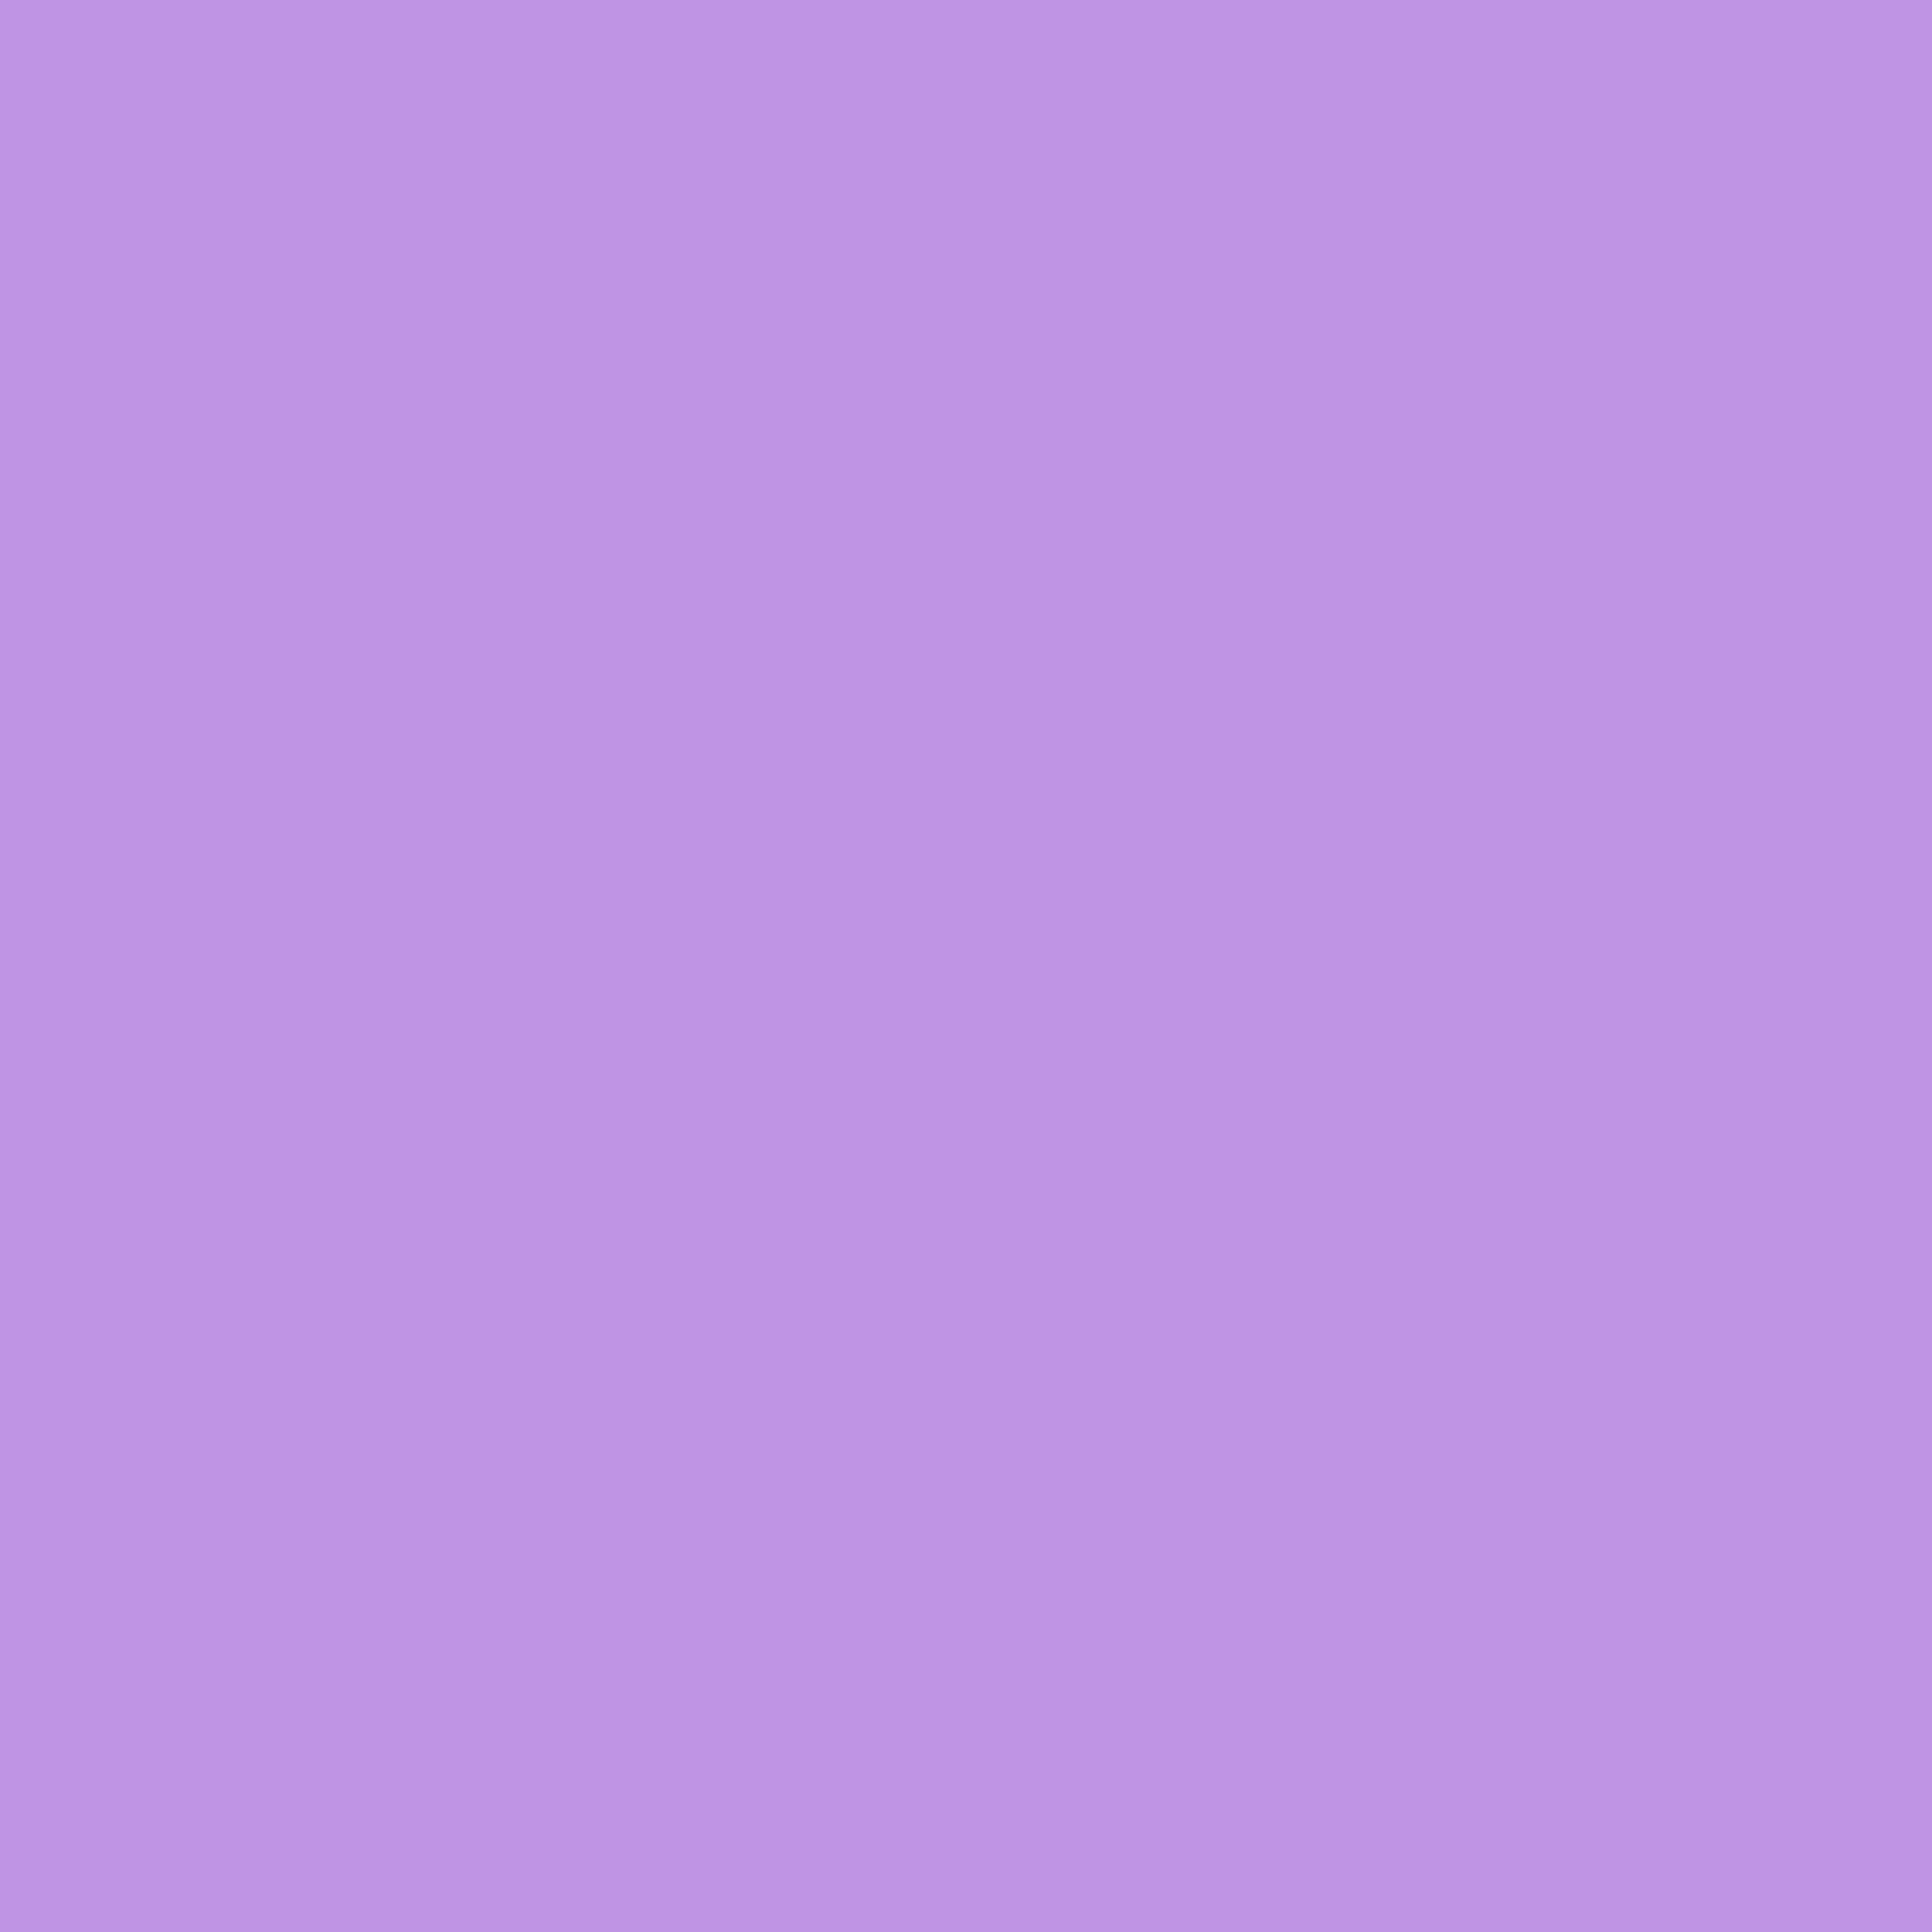 2732x2732 Bright Lavender Solid Color Background